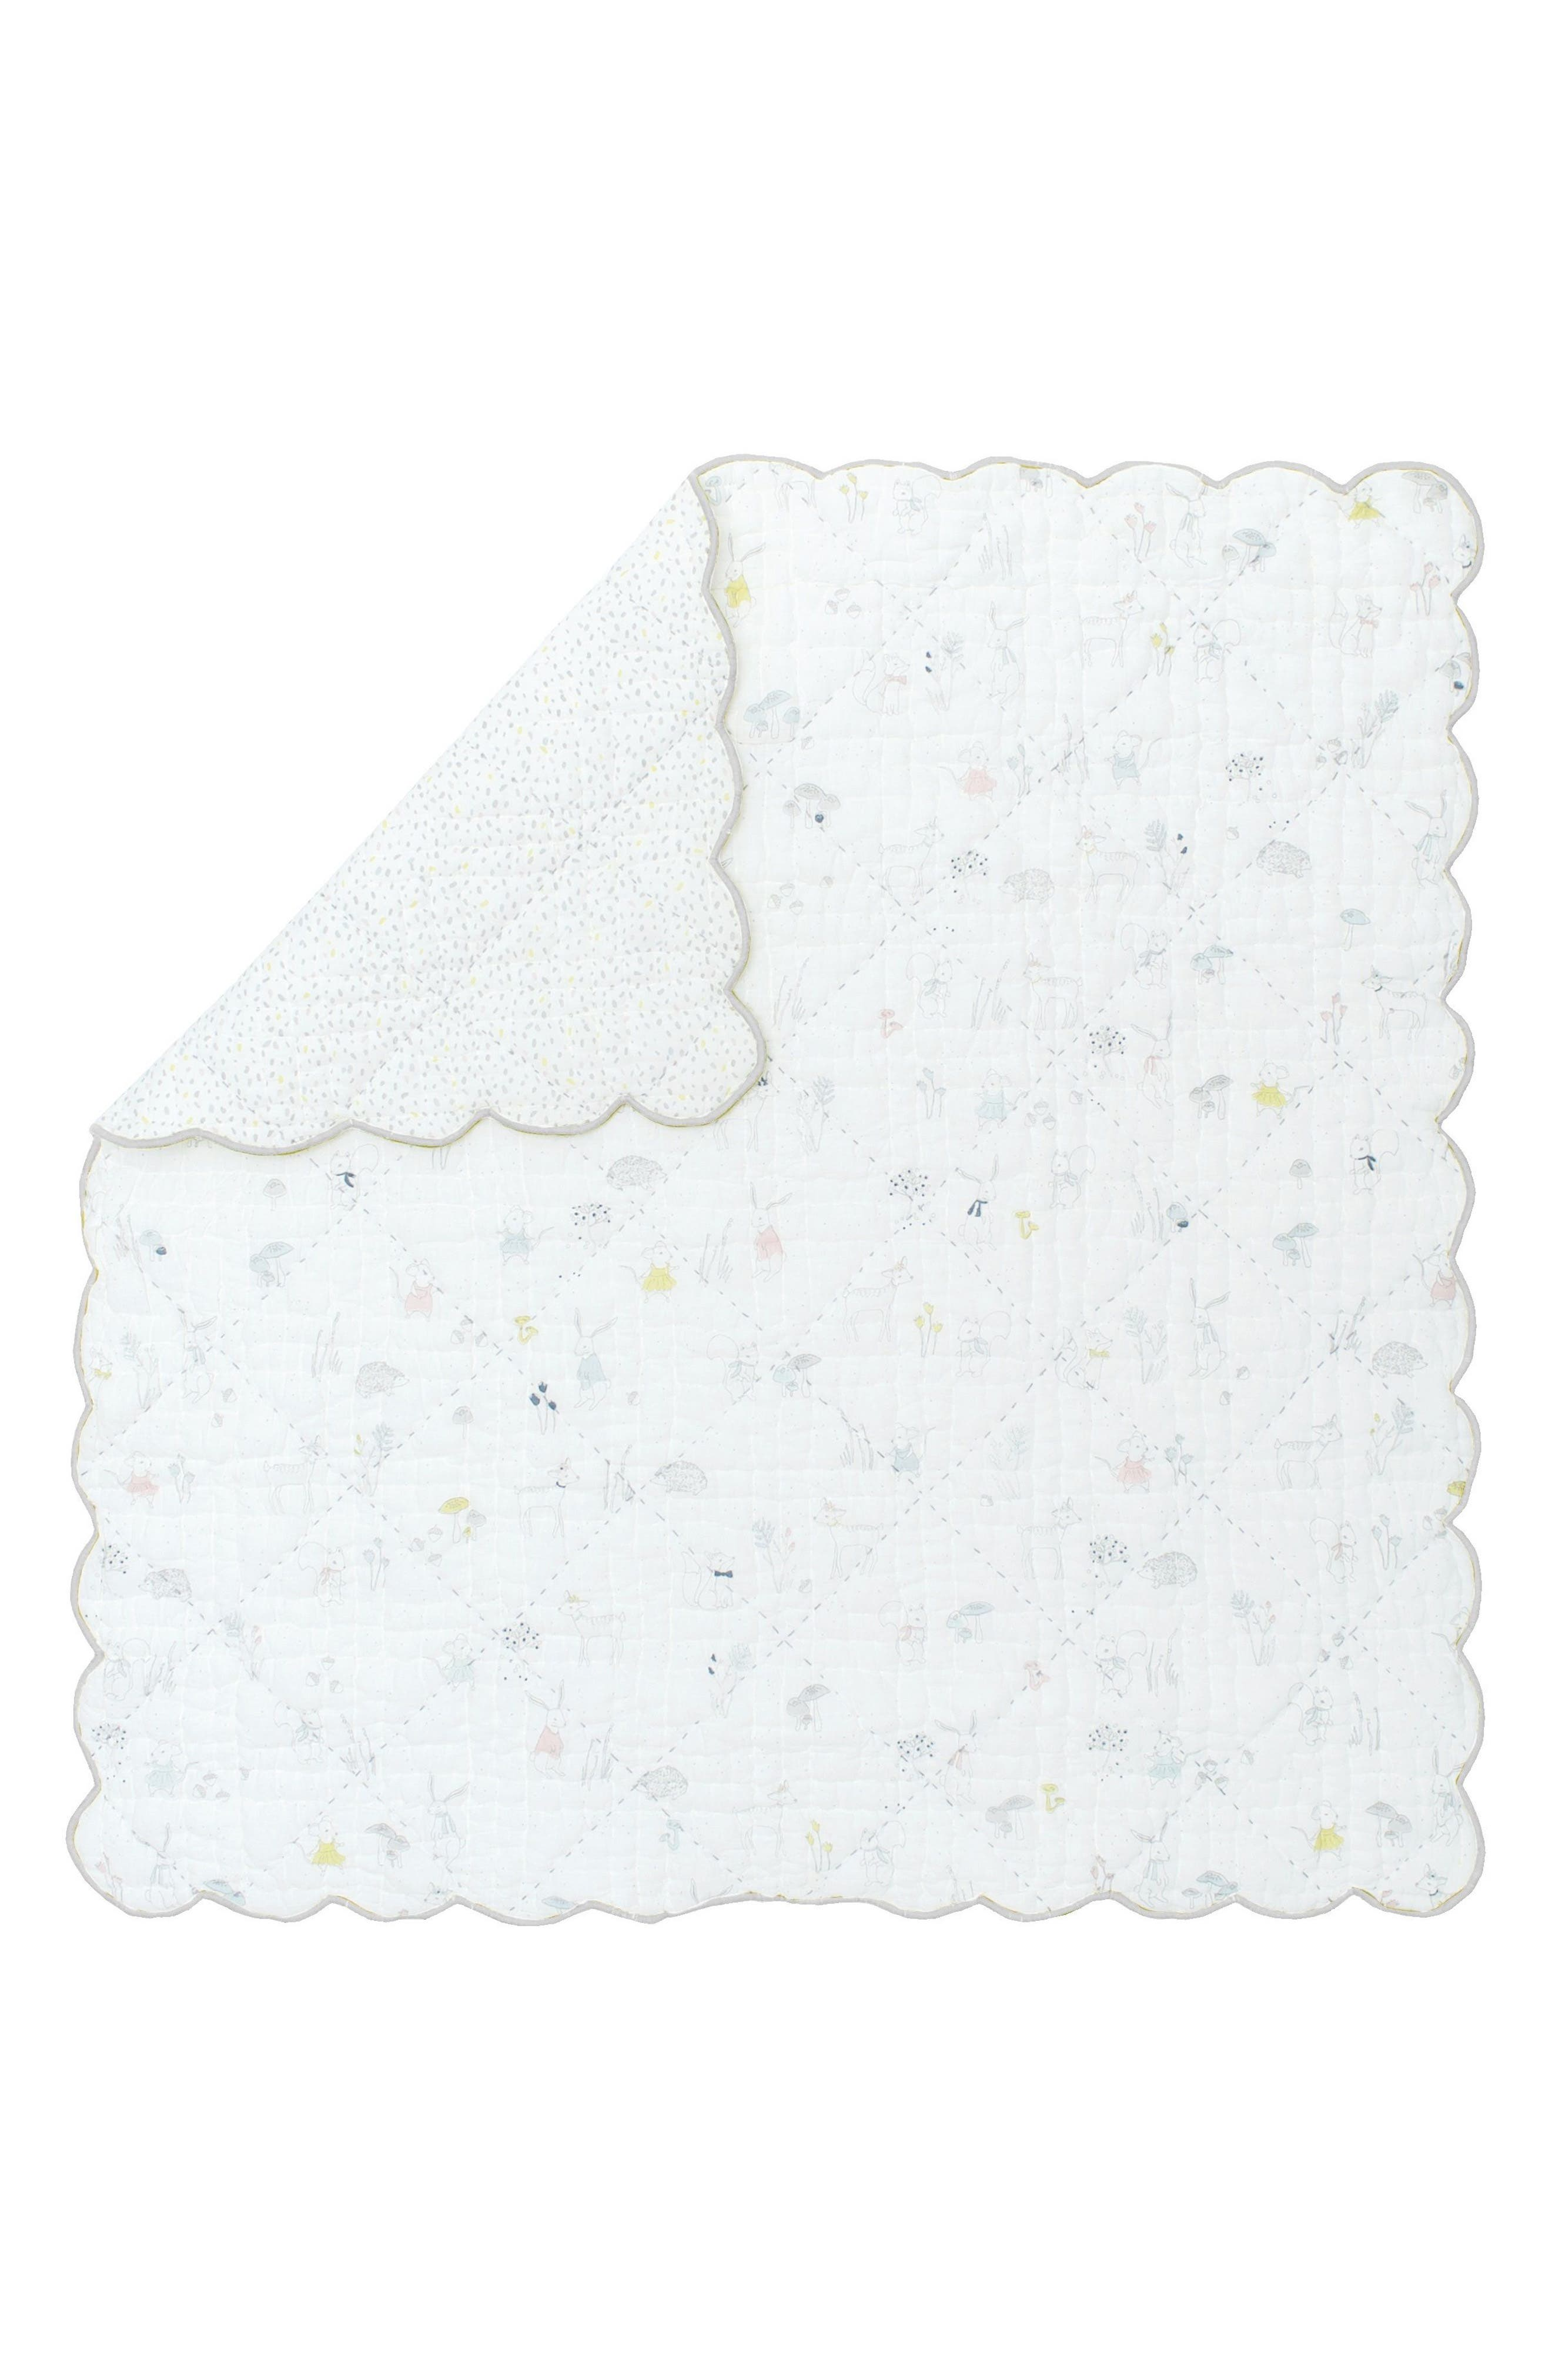 Main Image - Petit Pehr Magical Forest Baby Blanket